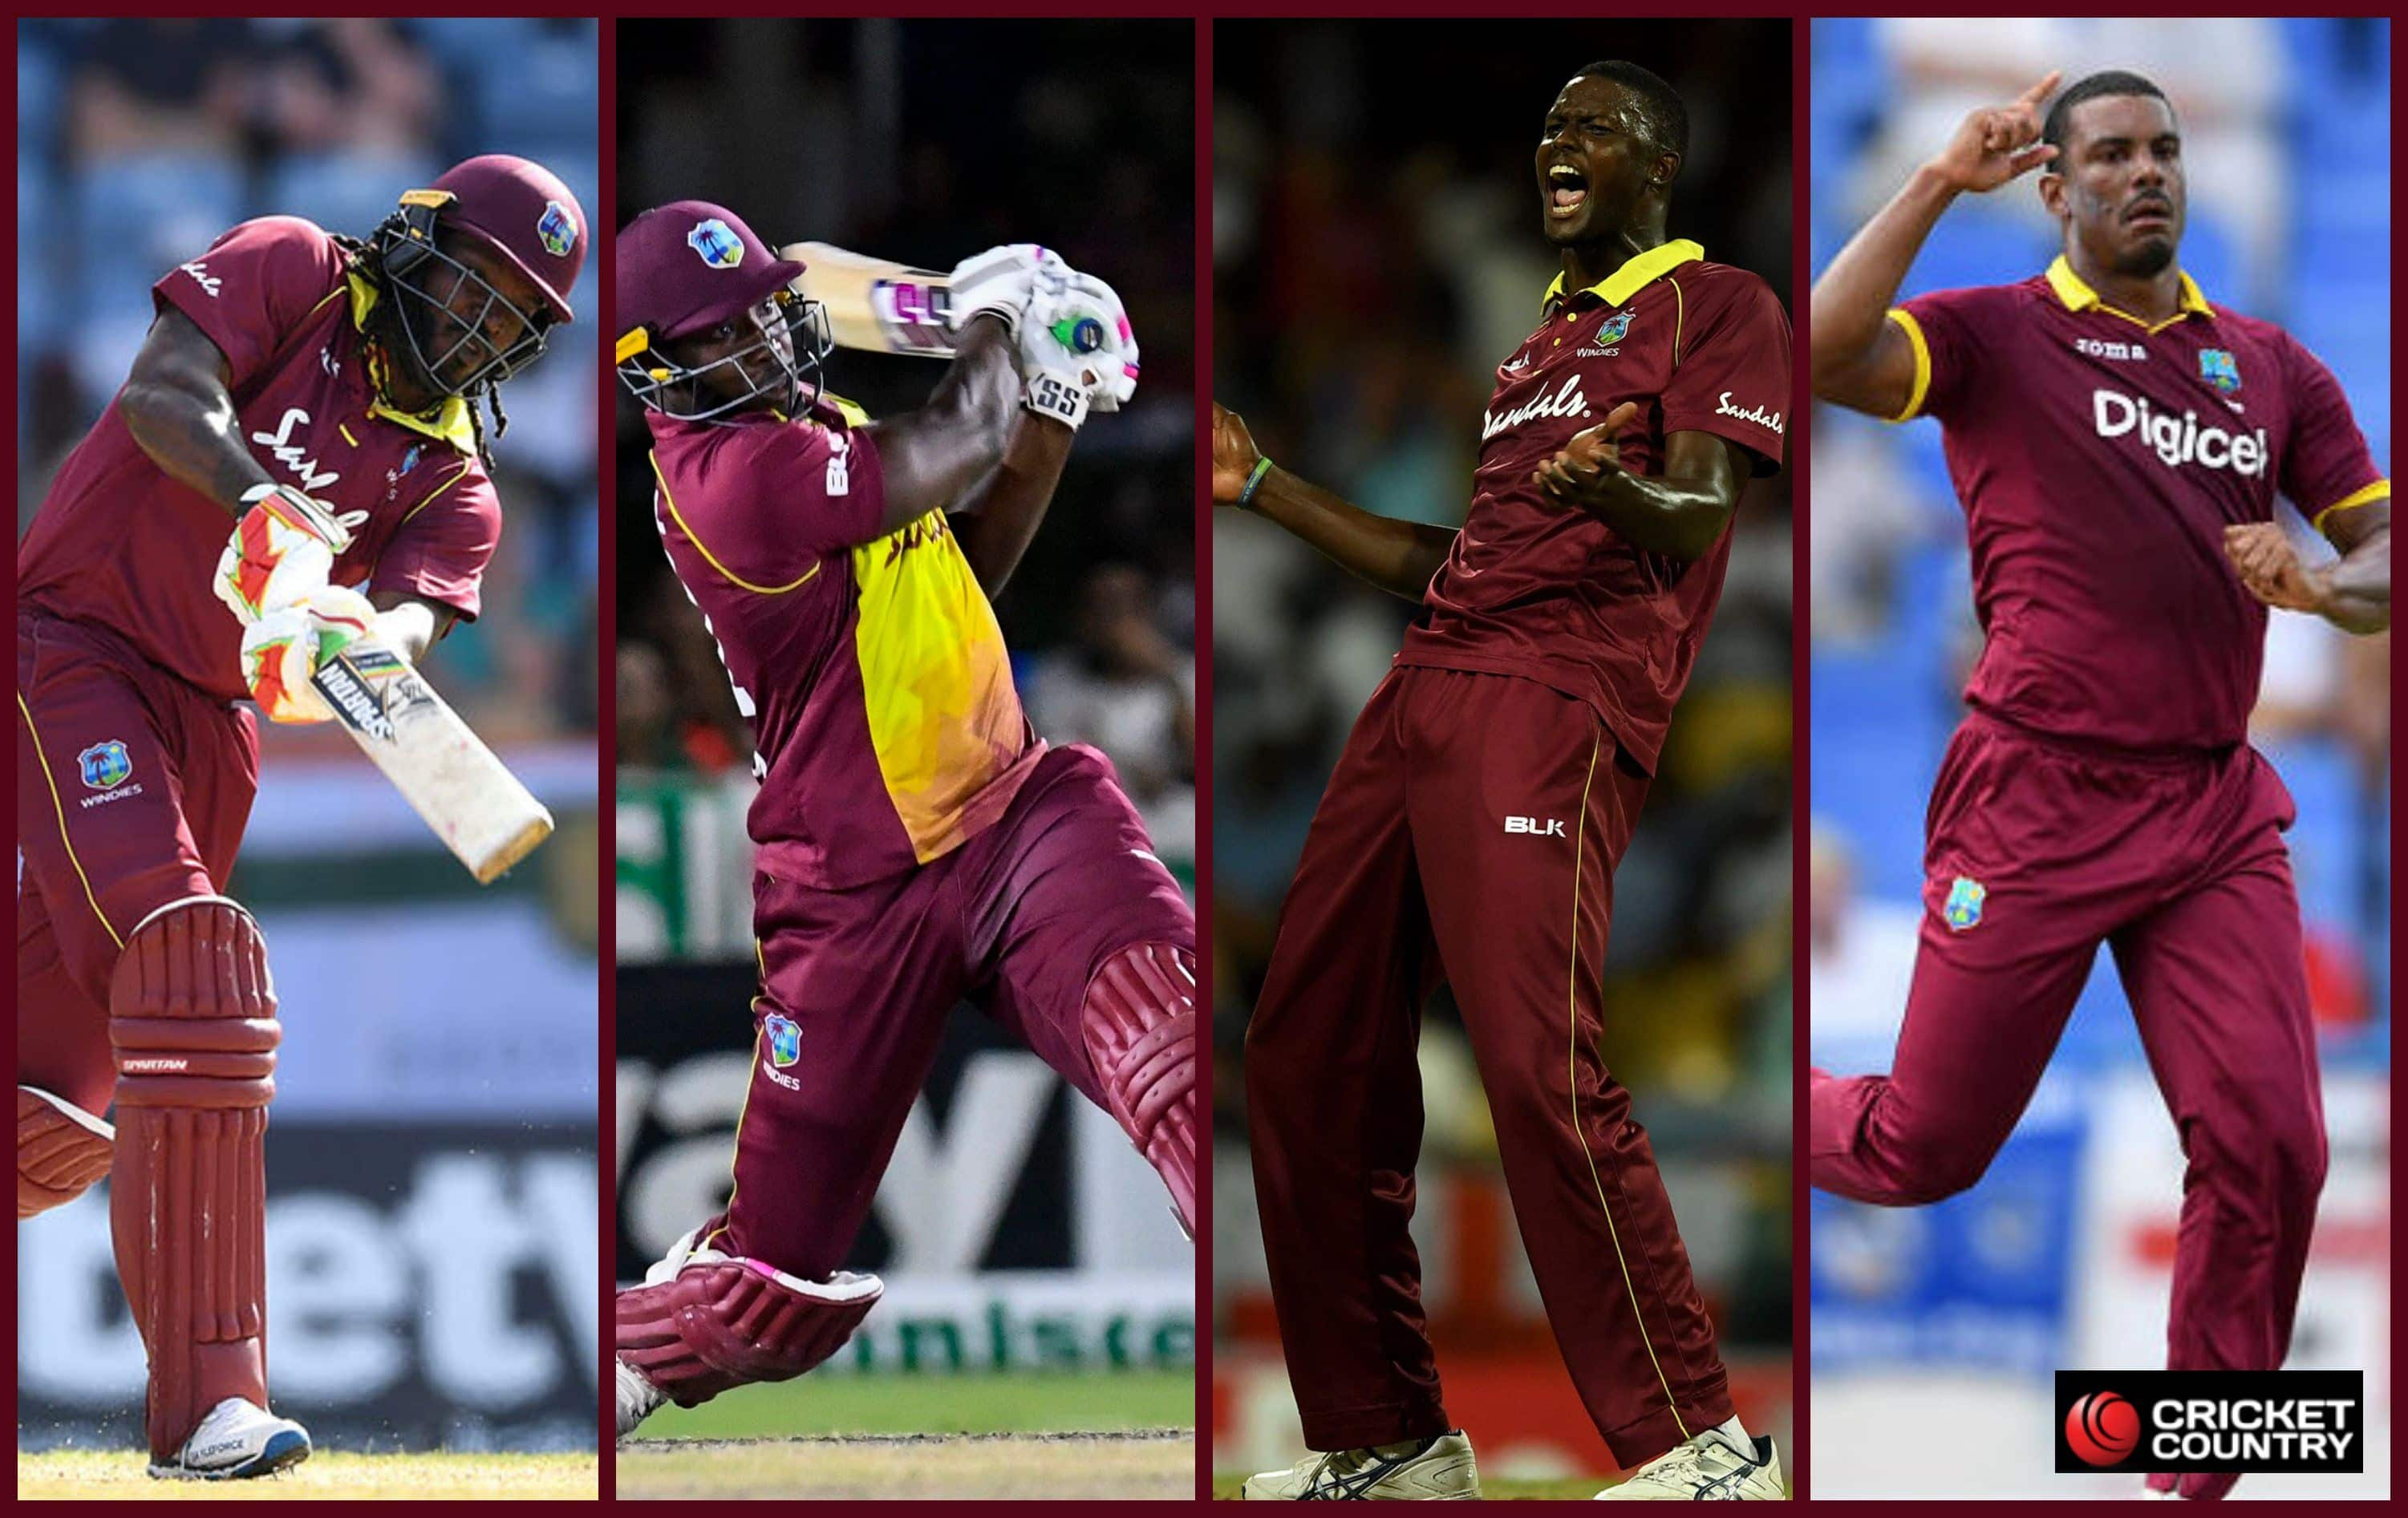 West Indies World Cup squad announced